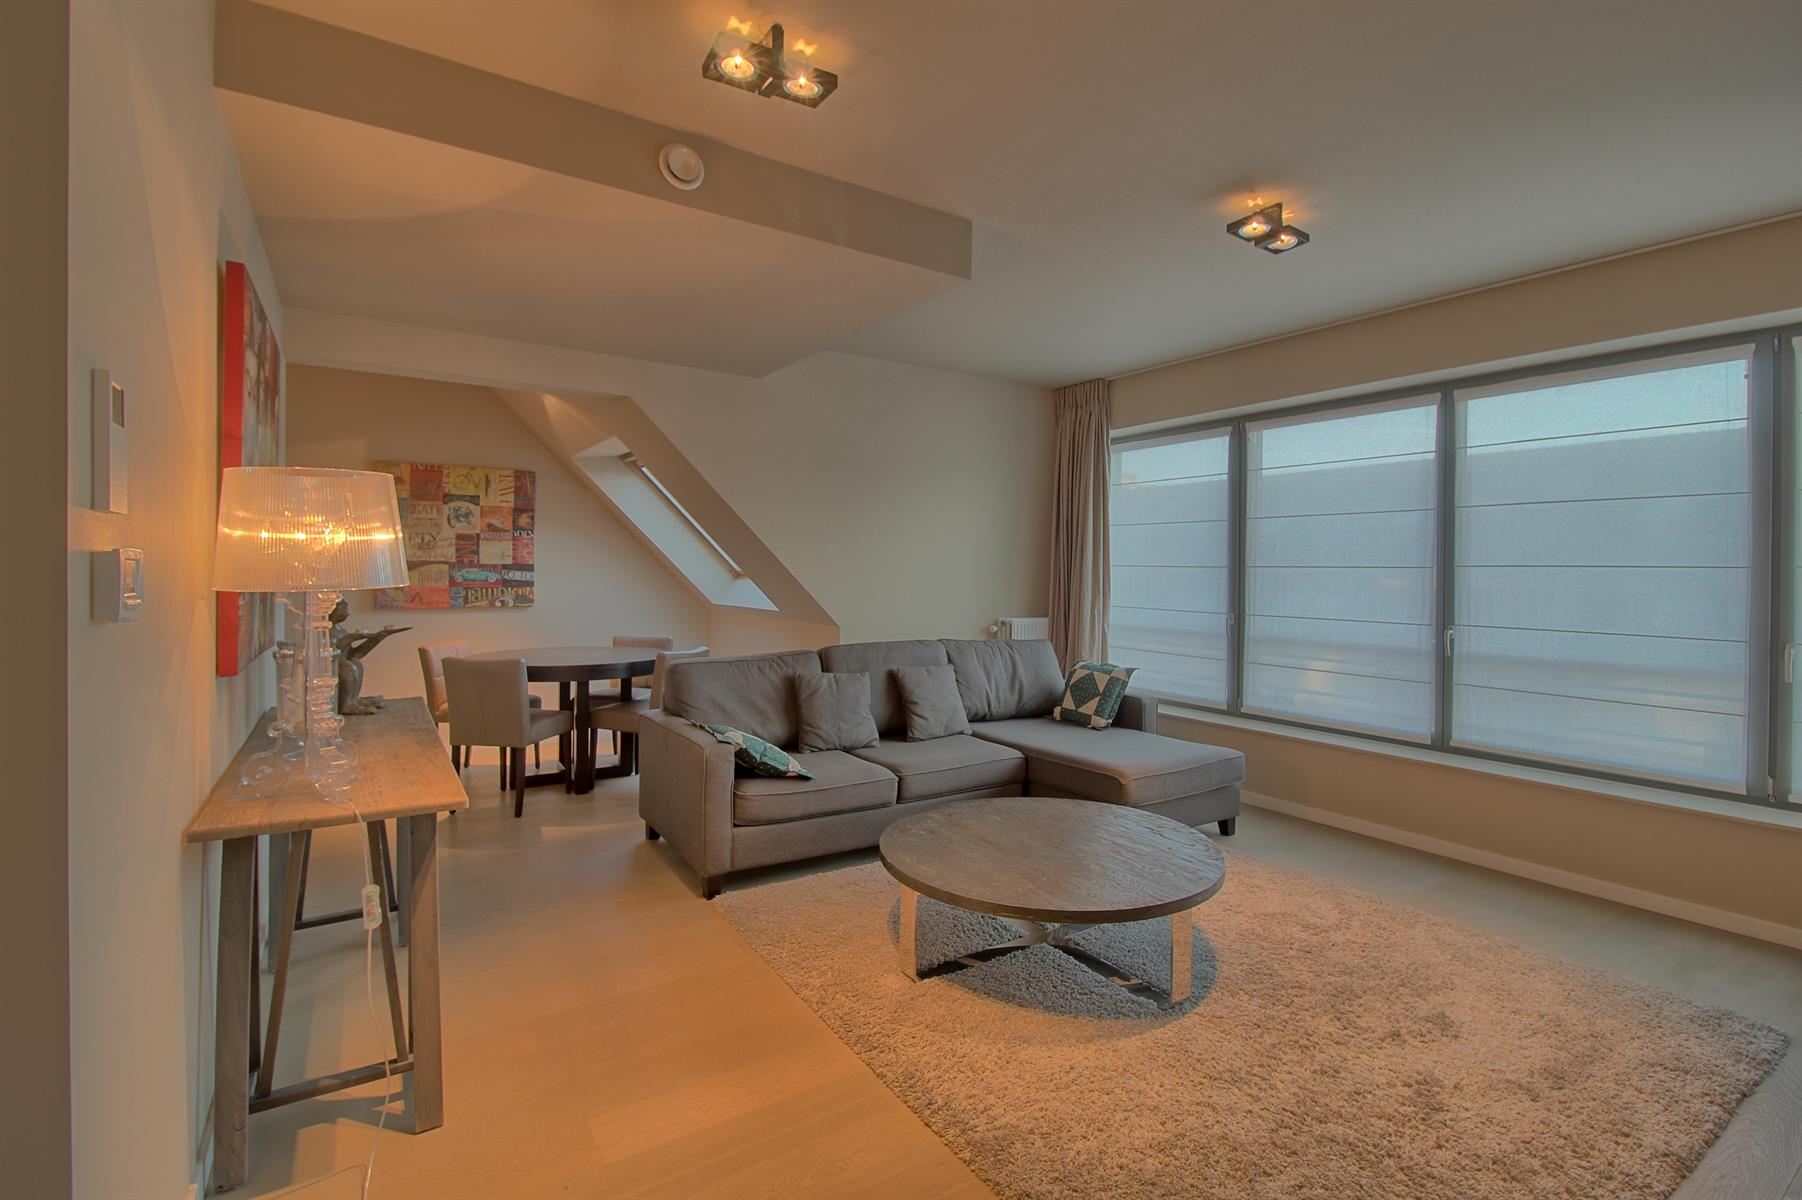 Appartement - Evere - #4210047-1